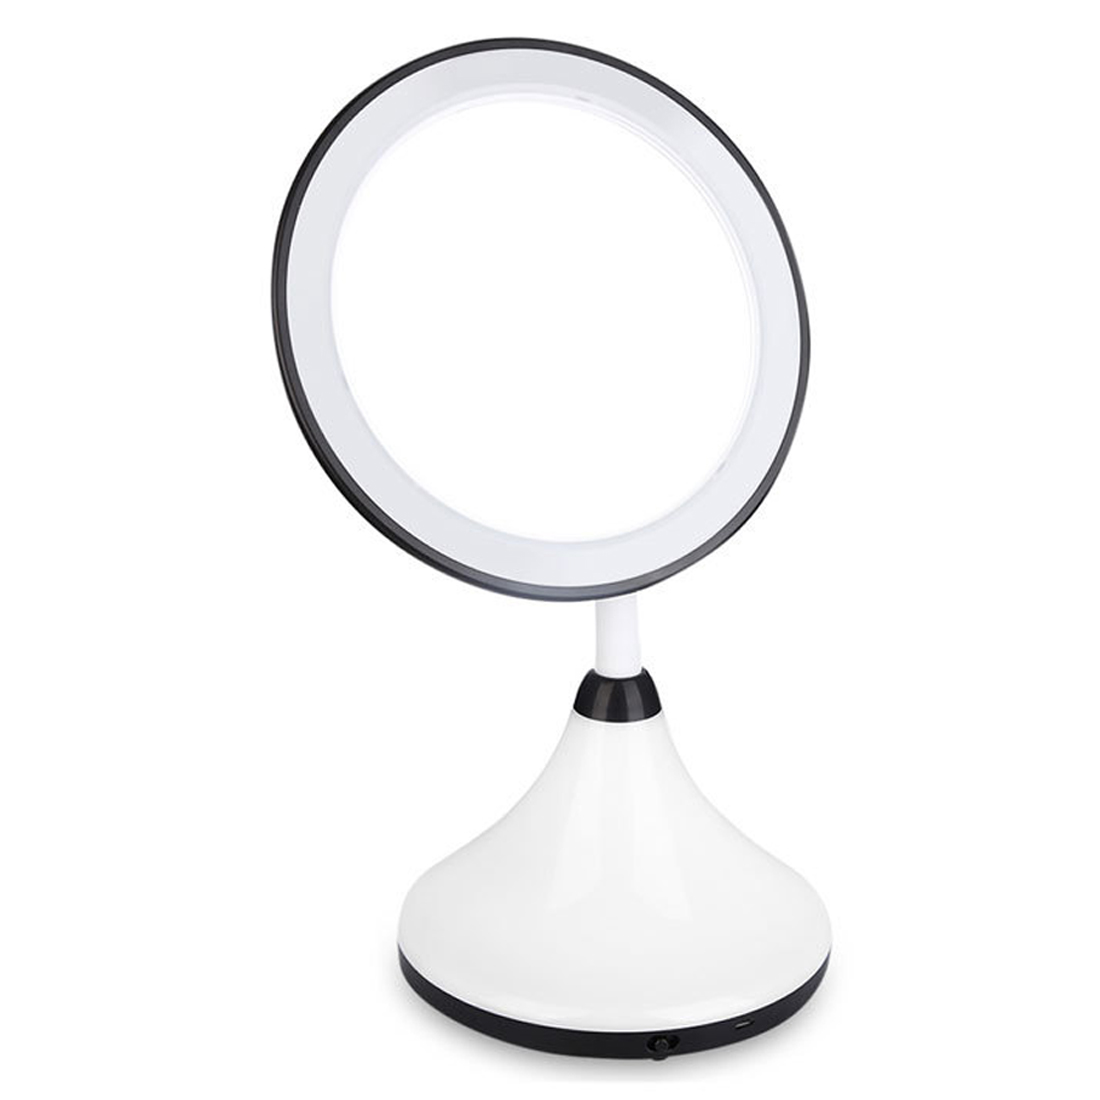 New Design Simple LED Table Lamp Makeup Mirror Cosmetic Tool Desktop Mirror With USB Line and Manual For Girl Gift